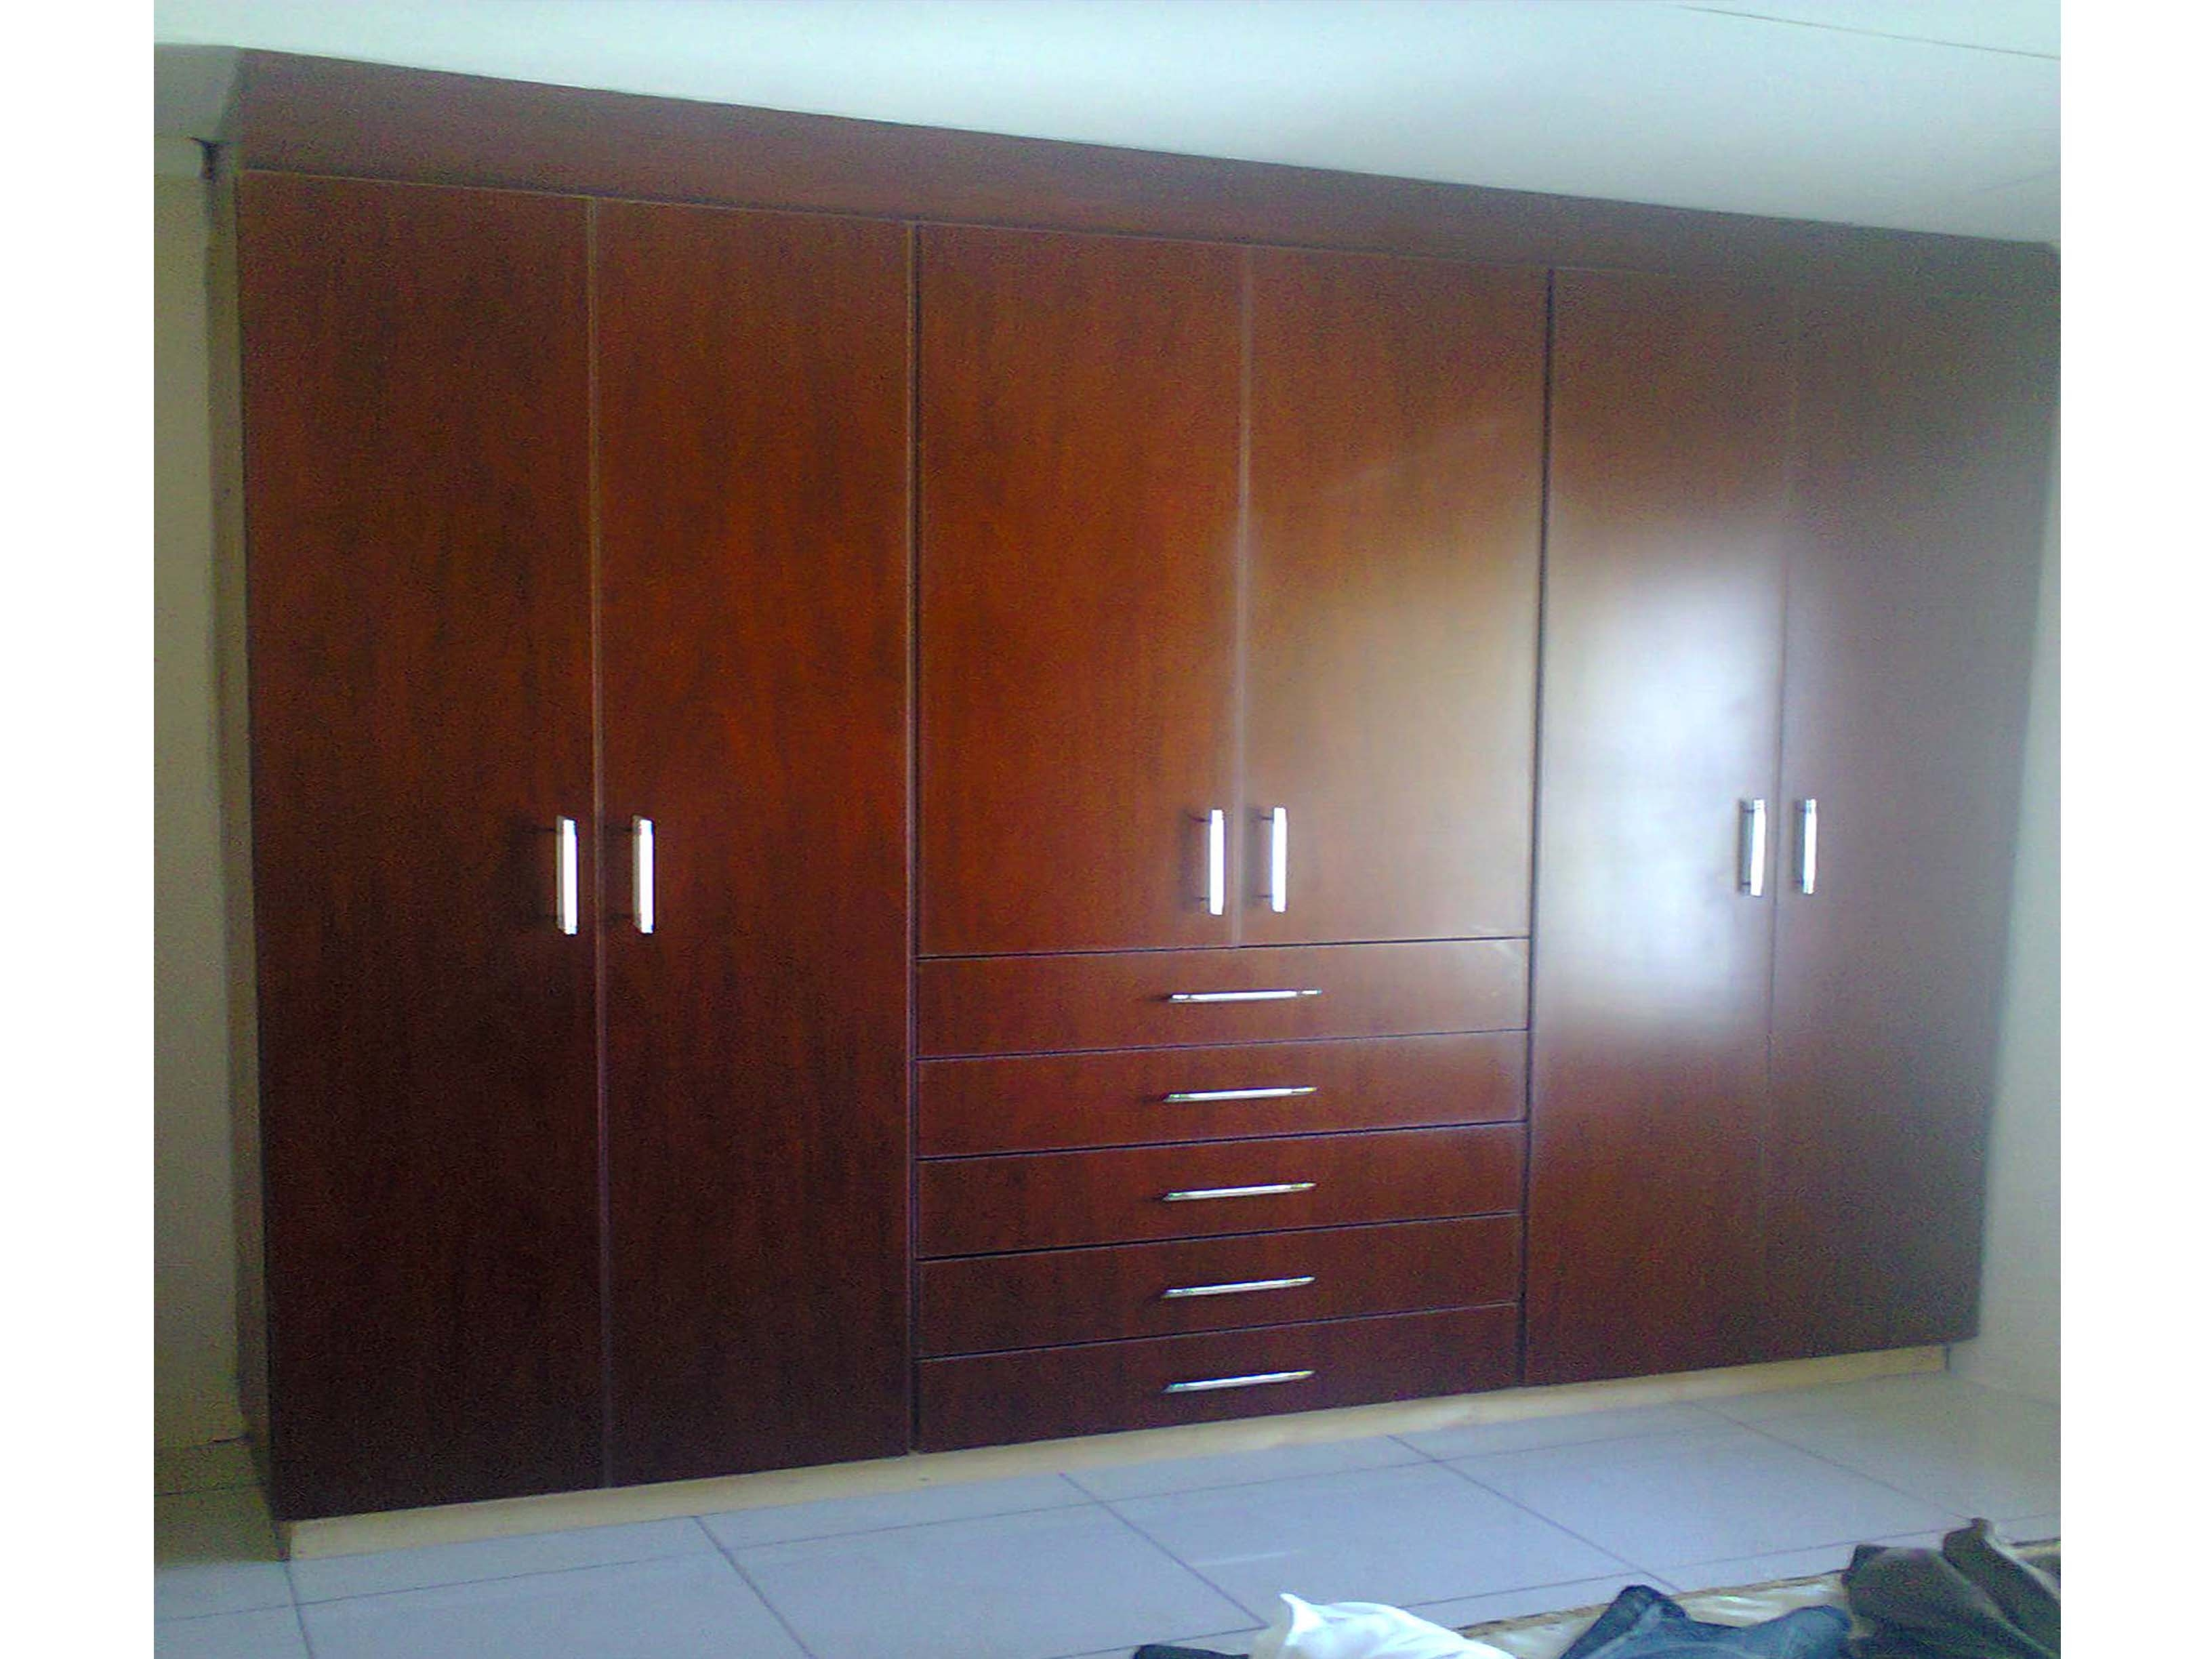 Wall Wardrobes And Fitted Wardrobes Wood Crafters Investment Intended For Wall Wardrobes (Image 12 of 15)